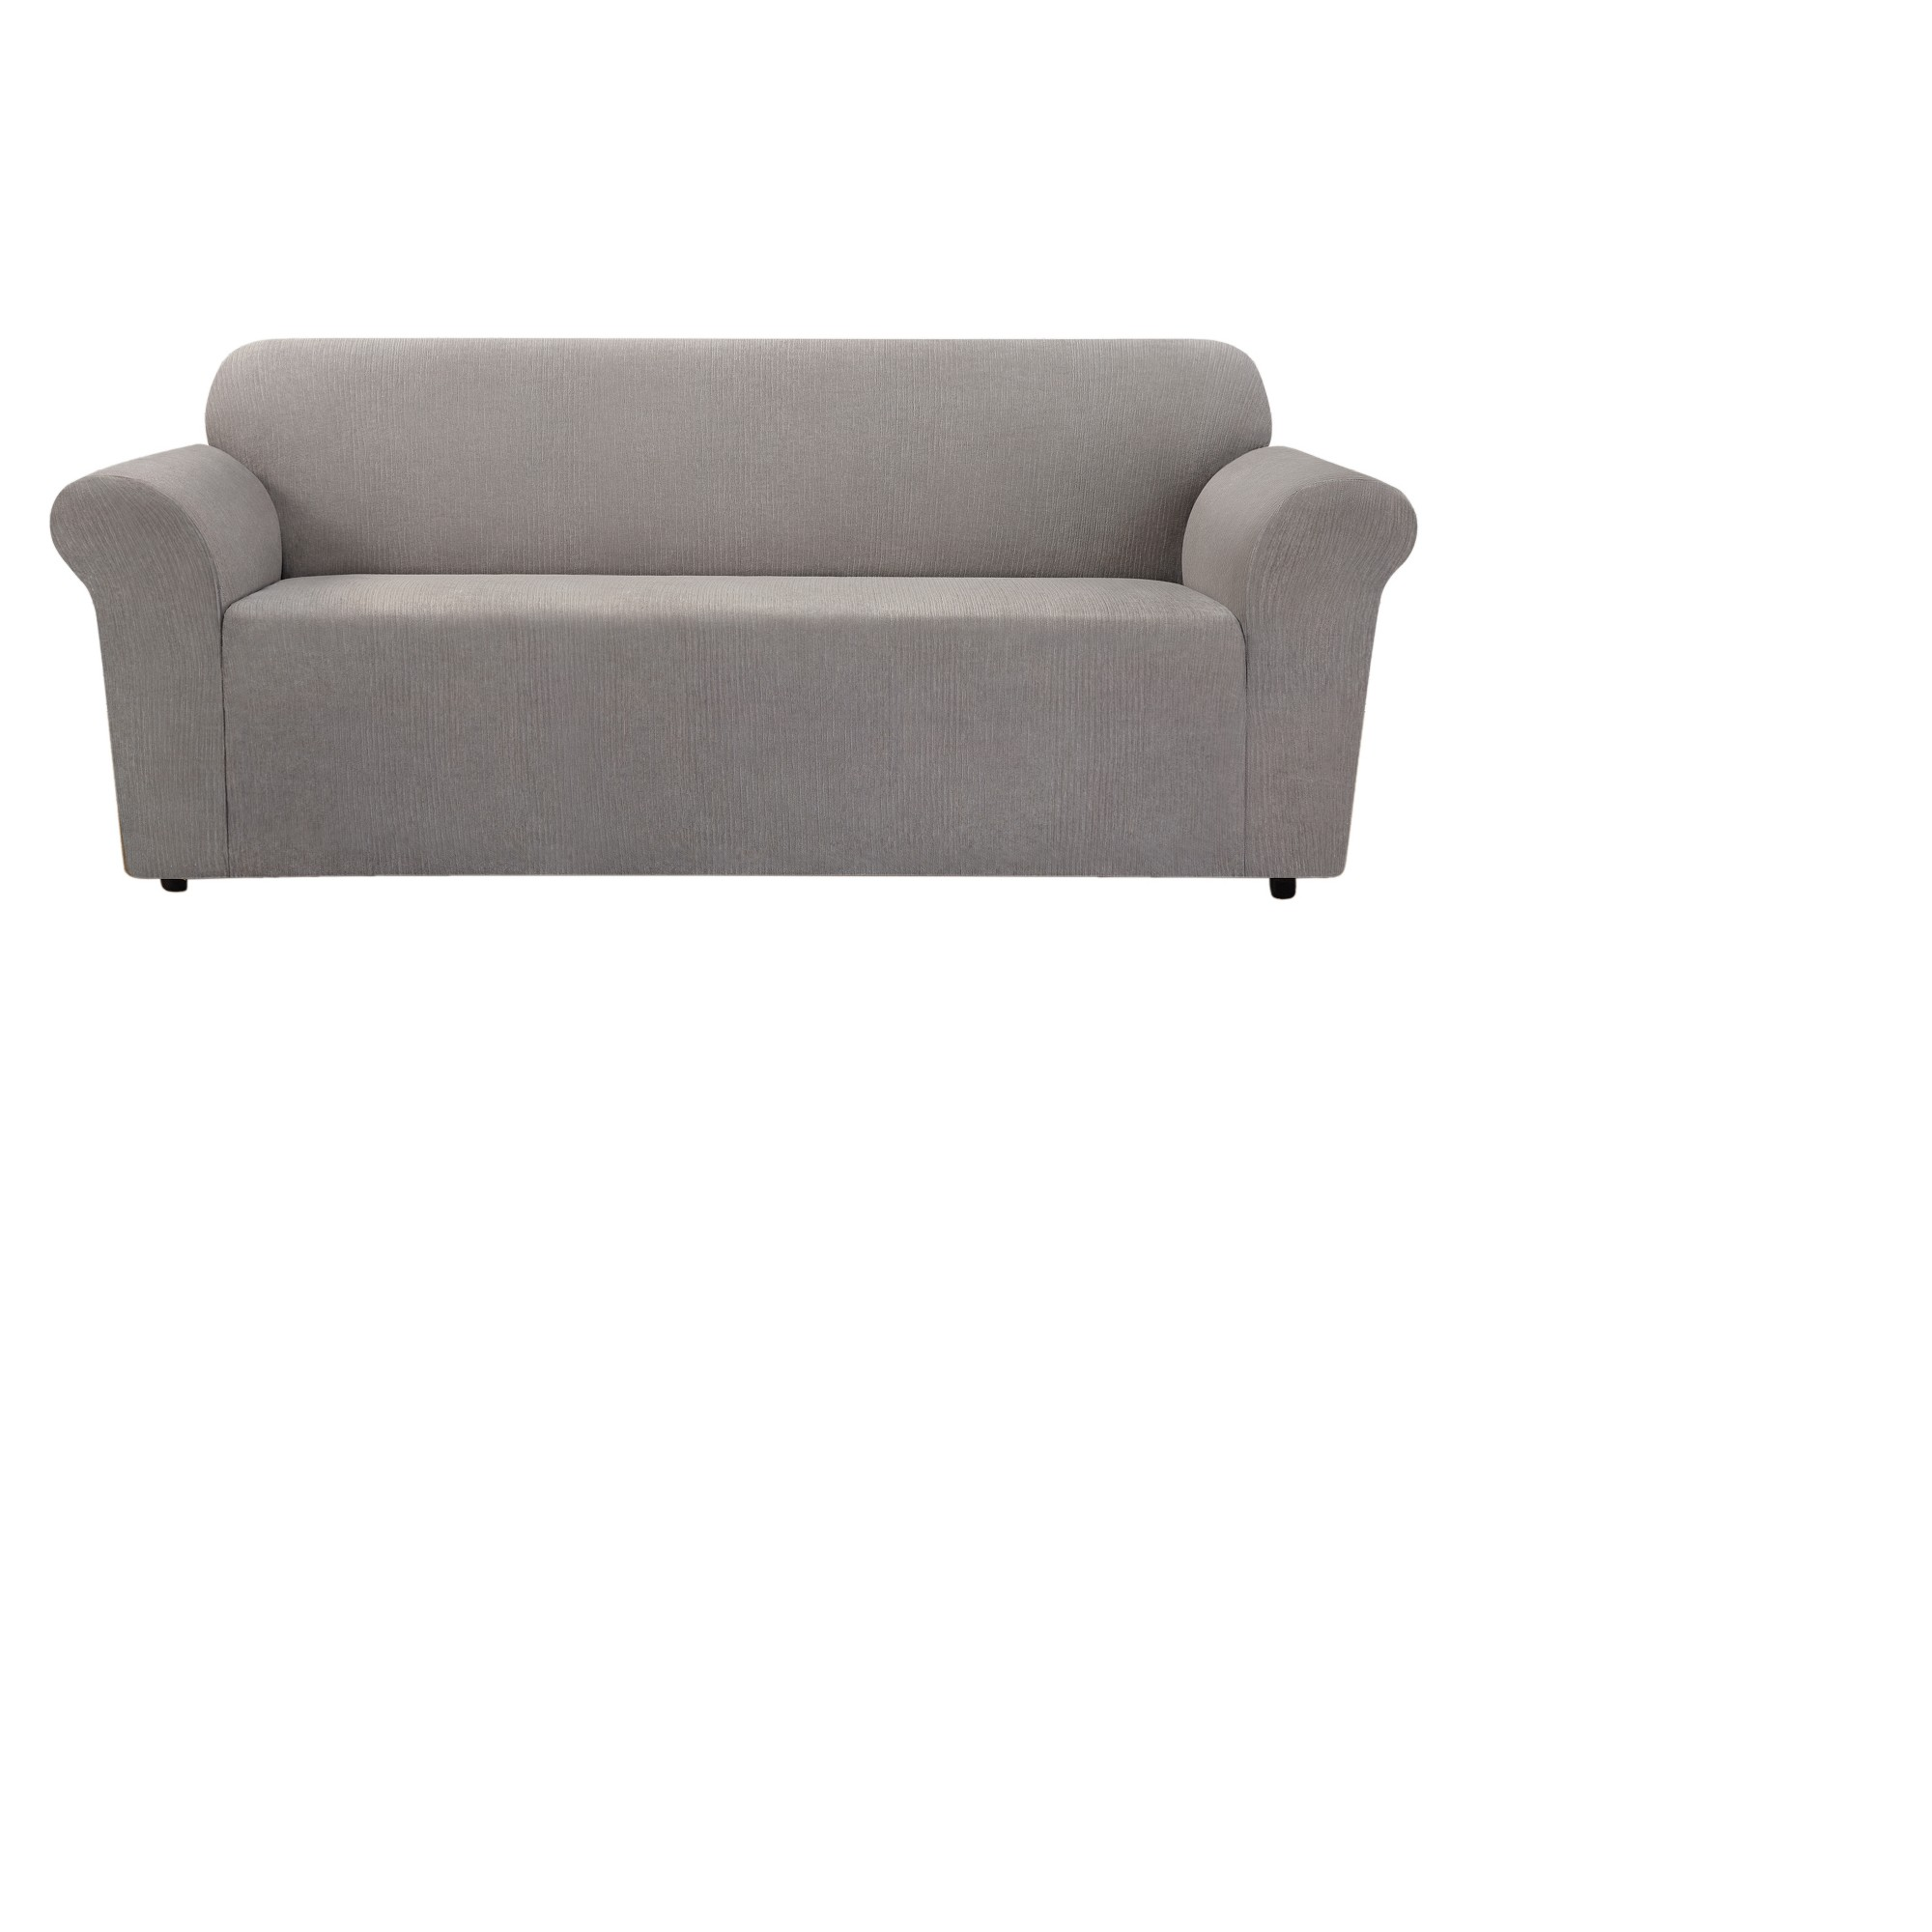 Stretch Chenille Sofa Slipcover Smoke Gray- Sure Fit, Gray in 2019 ...